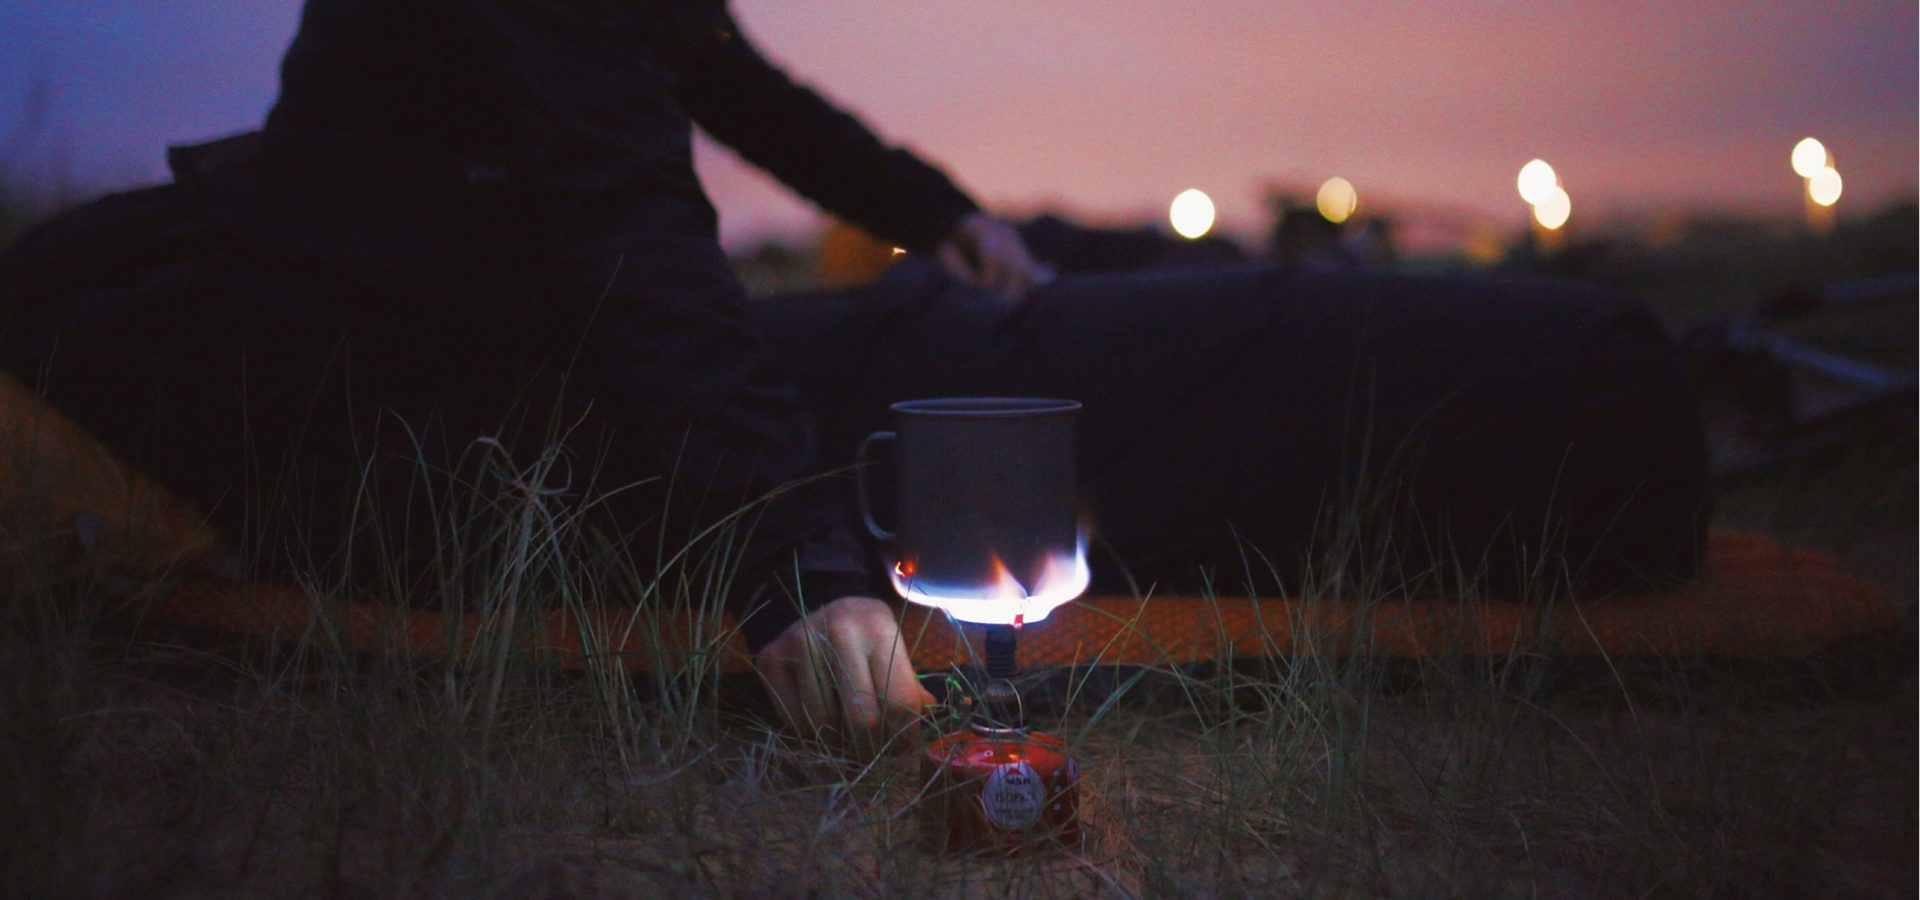 A person warming a cup on a gas cooker in the middle of the night